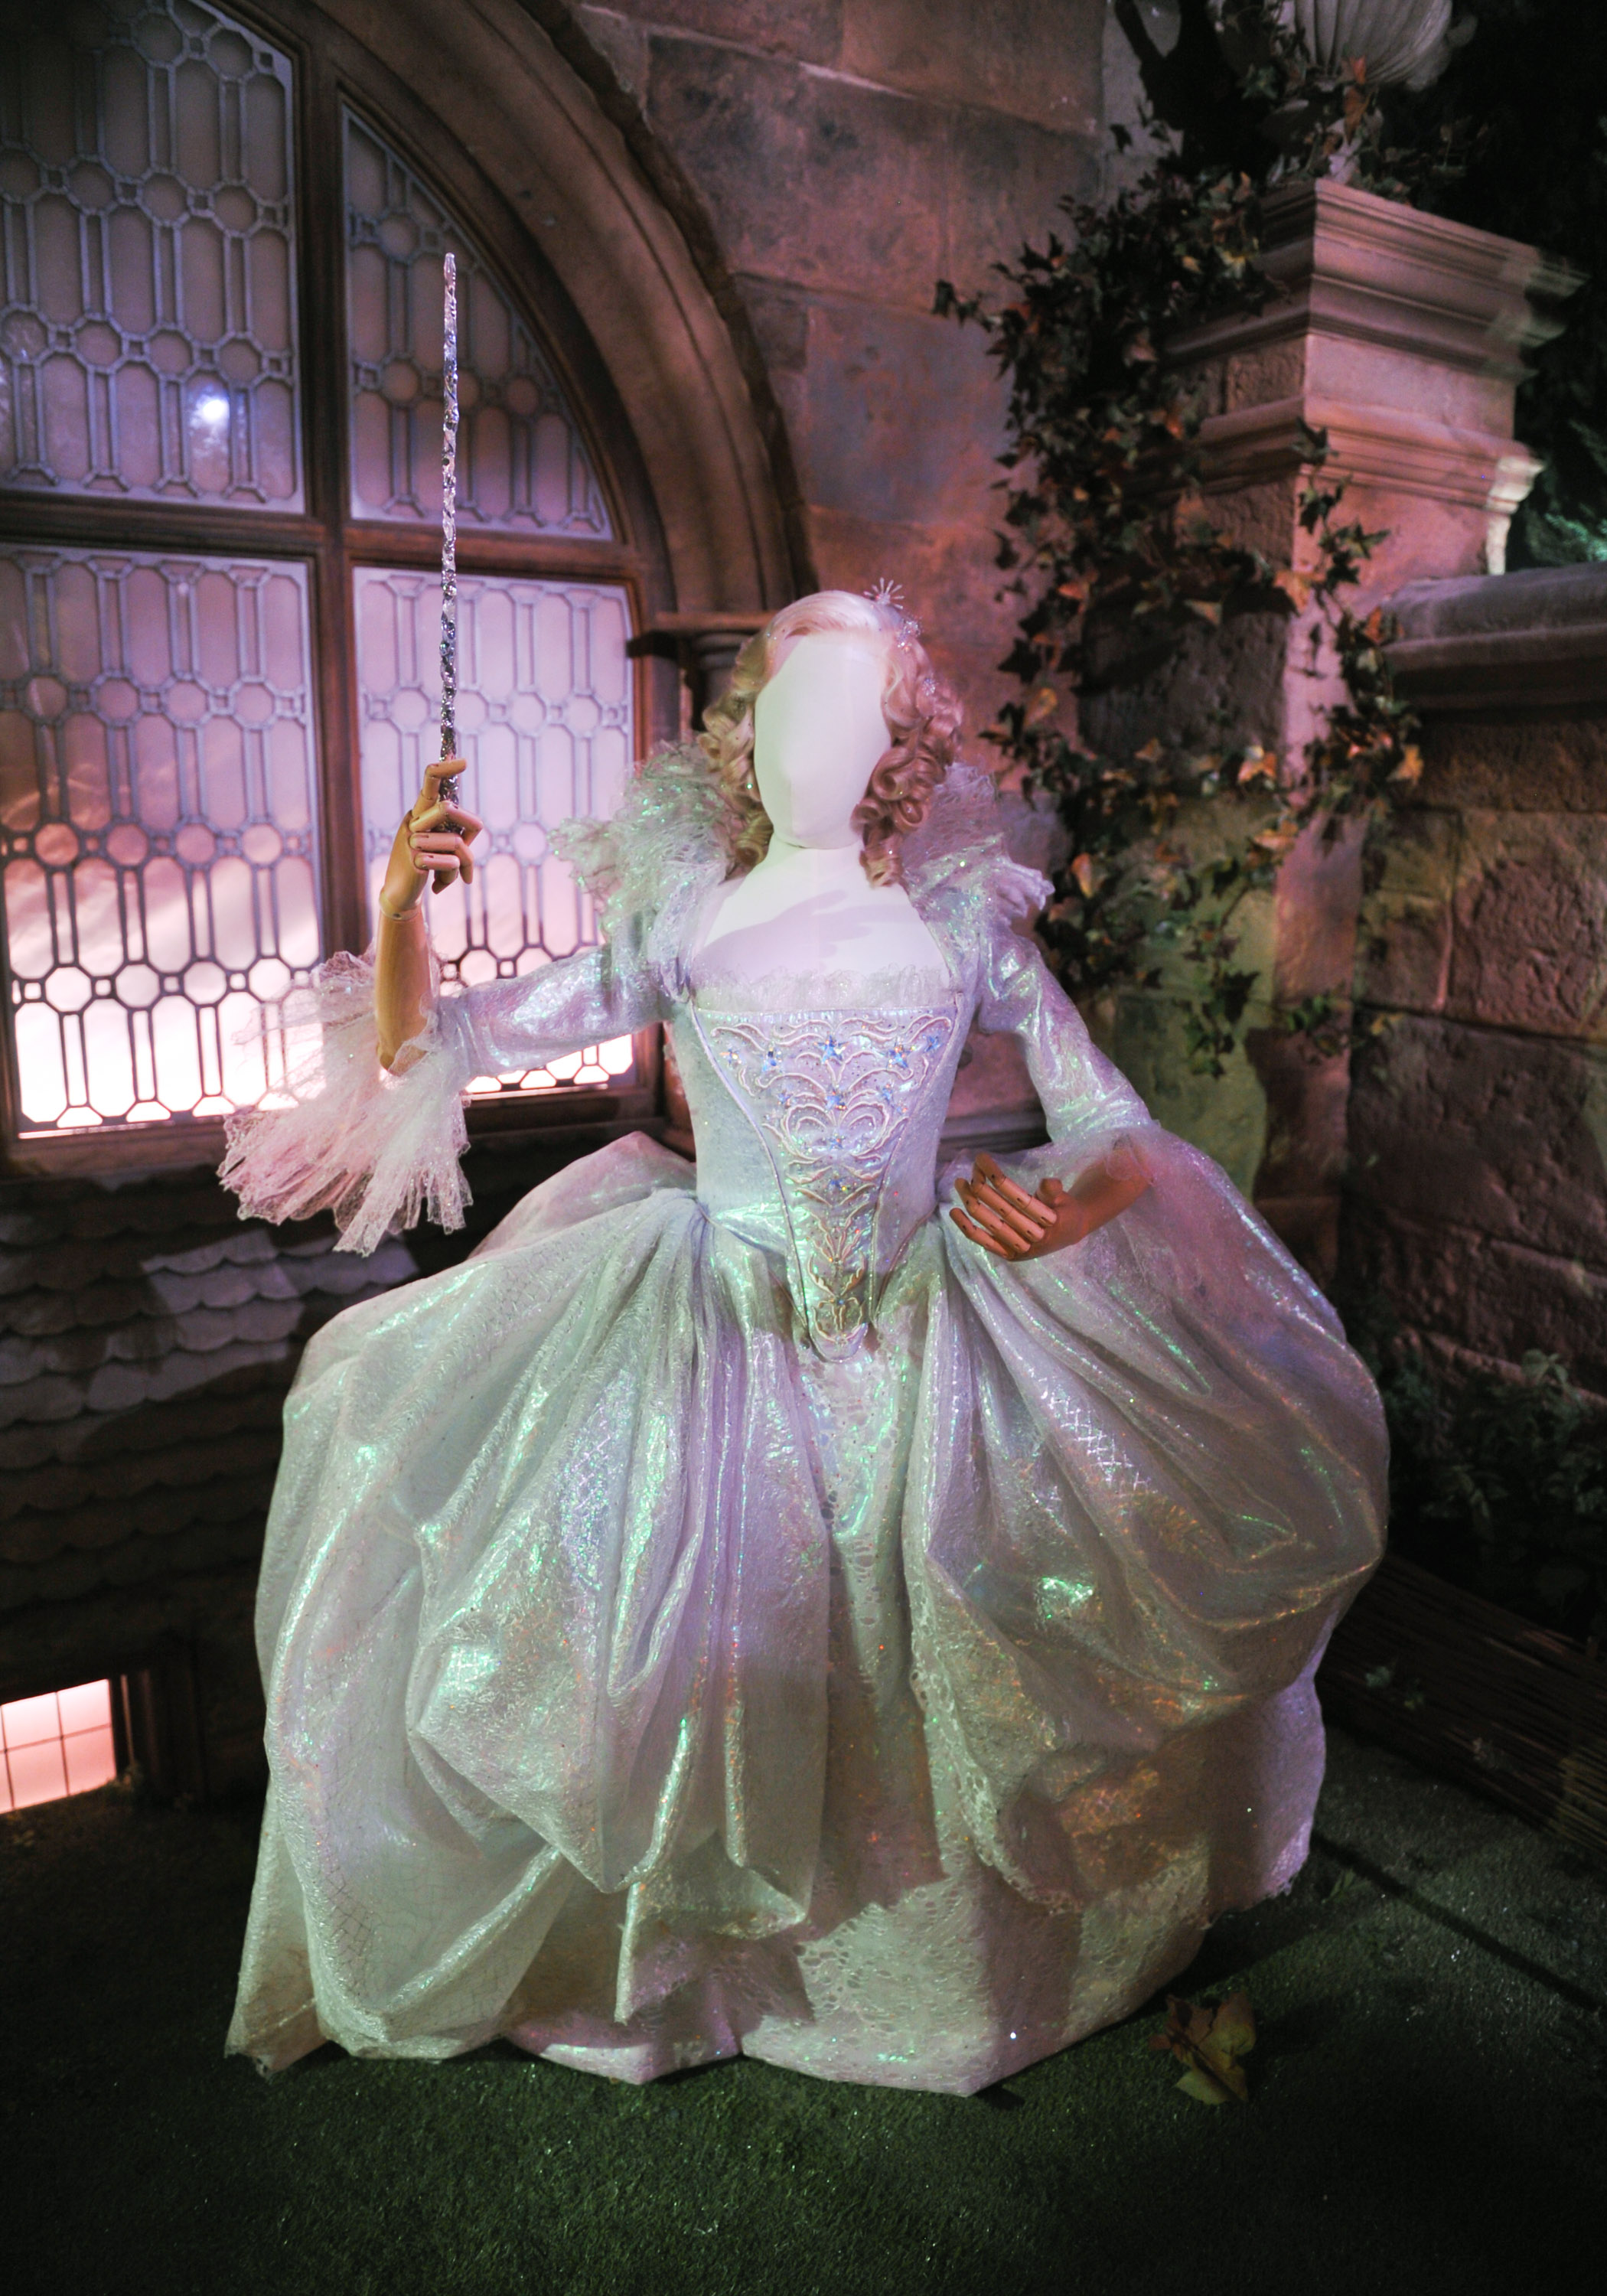 Upcoming Live Action Disney Movies: A Photo Tour Of Disney's Cinderella: The Exhibition